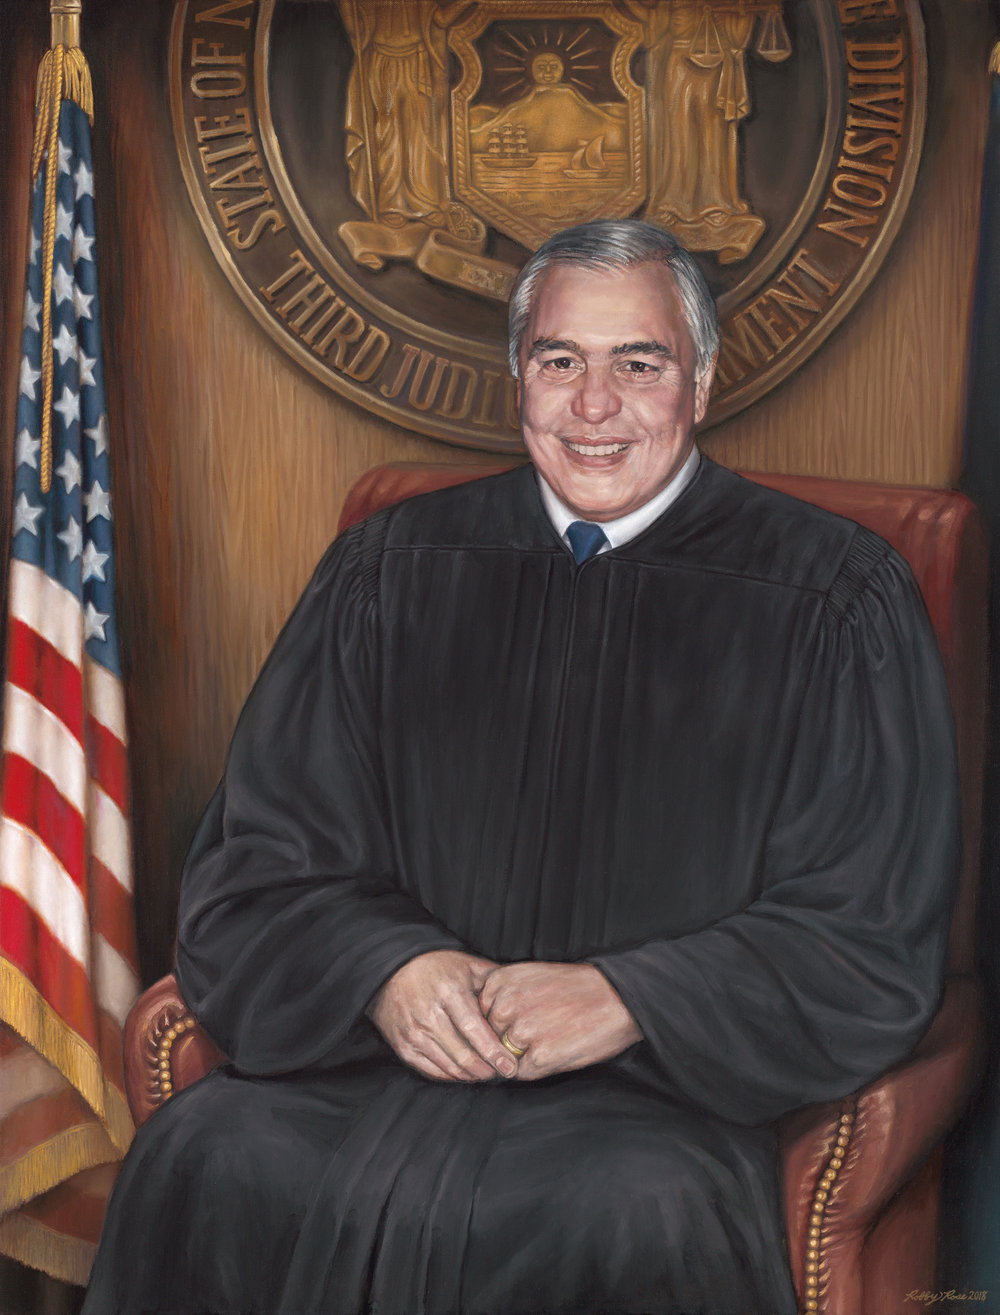 Hon. Anthony V. Cardona, Presiding Justice of the Appellate Division of the New York State Supreme Court, Third Department